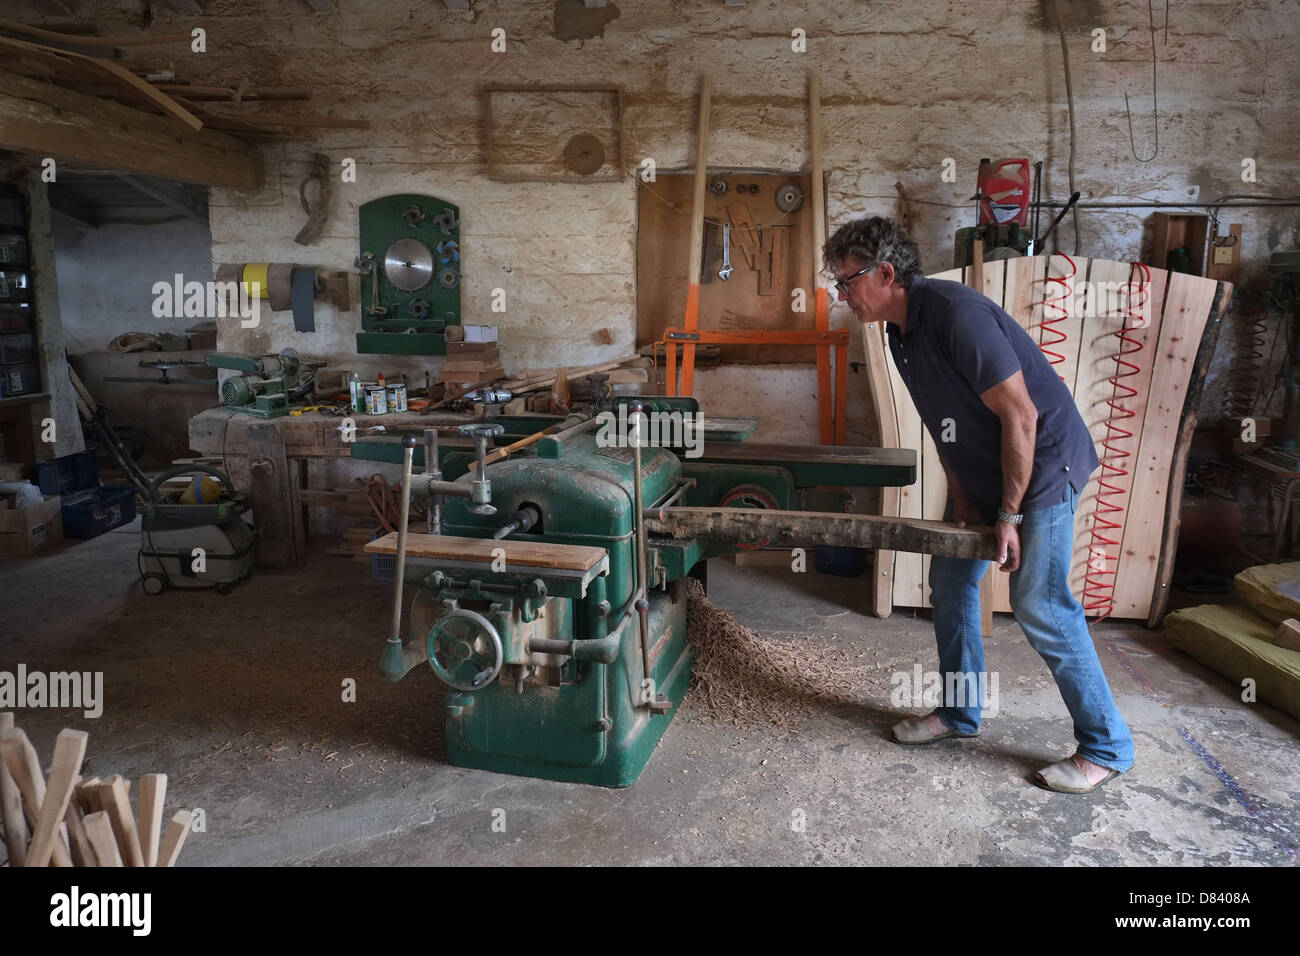 Woodworker, or arader, using planing machine in his workshop, Menorca, Spain - Stock Image